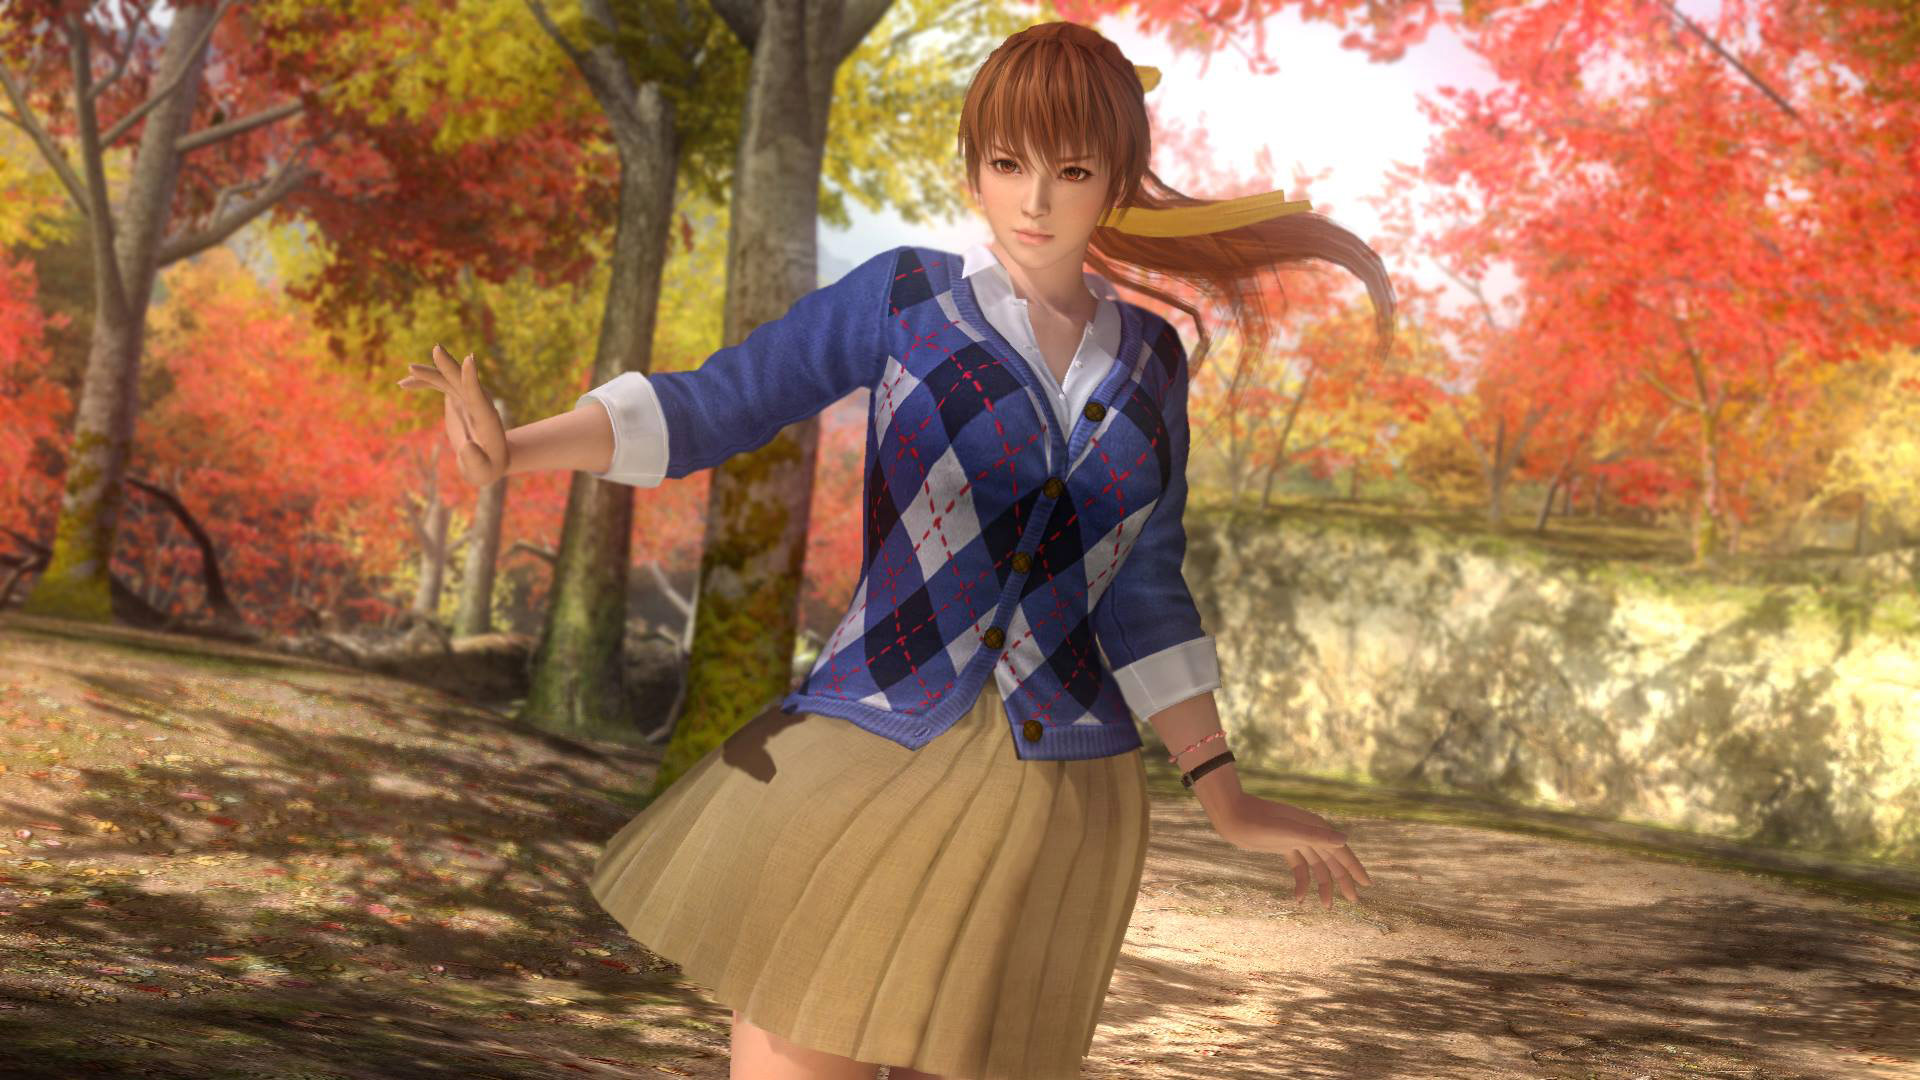 Dead or Alive 5 Ultimate screen shot #3